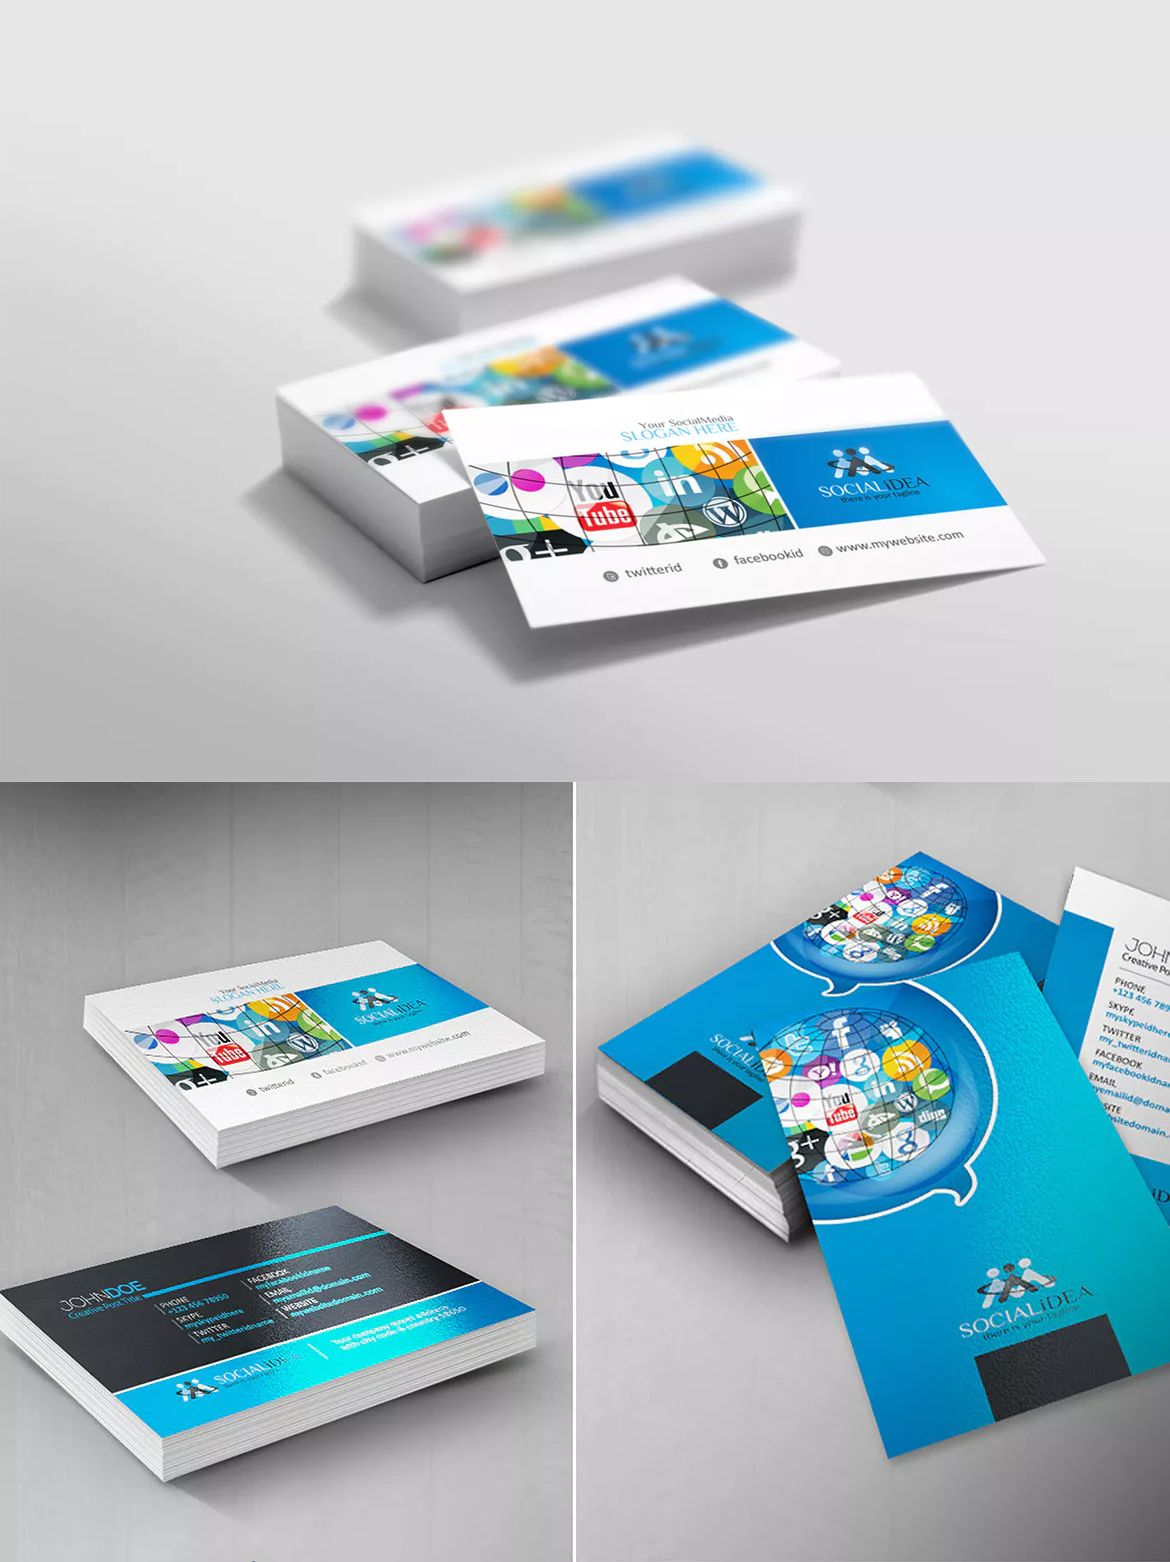 Social media business card template eps business card templates social media business card template eps accmission Image collections